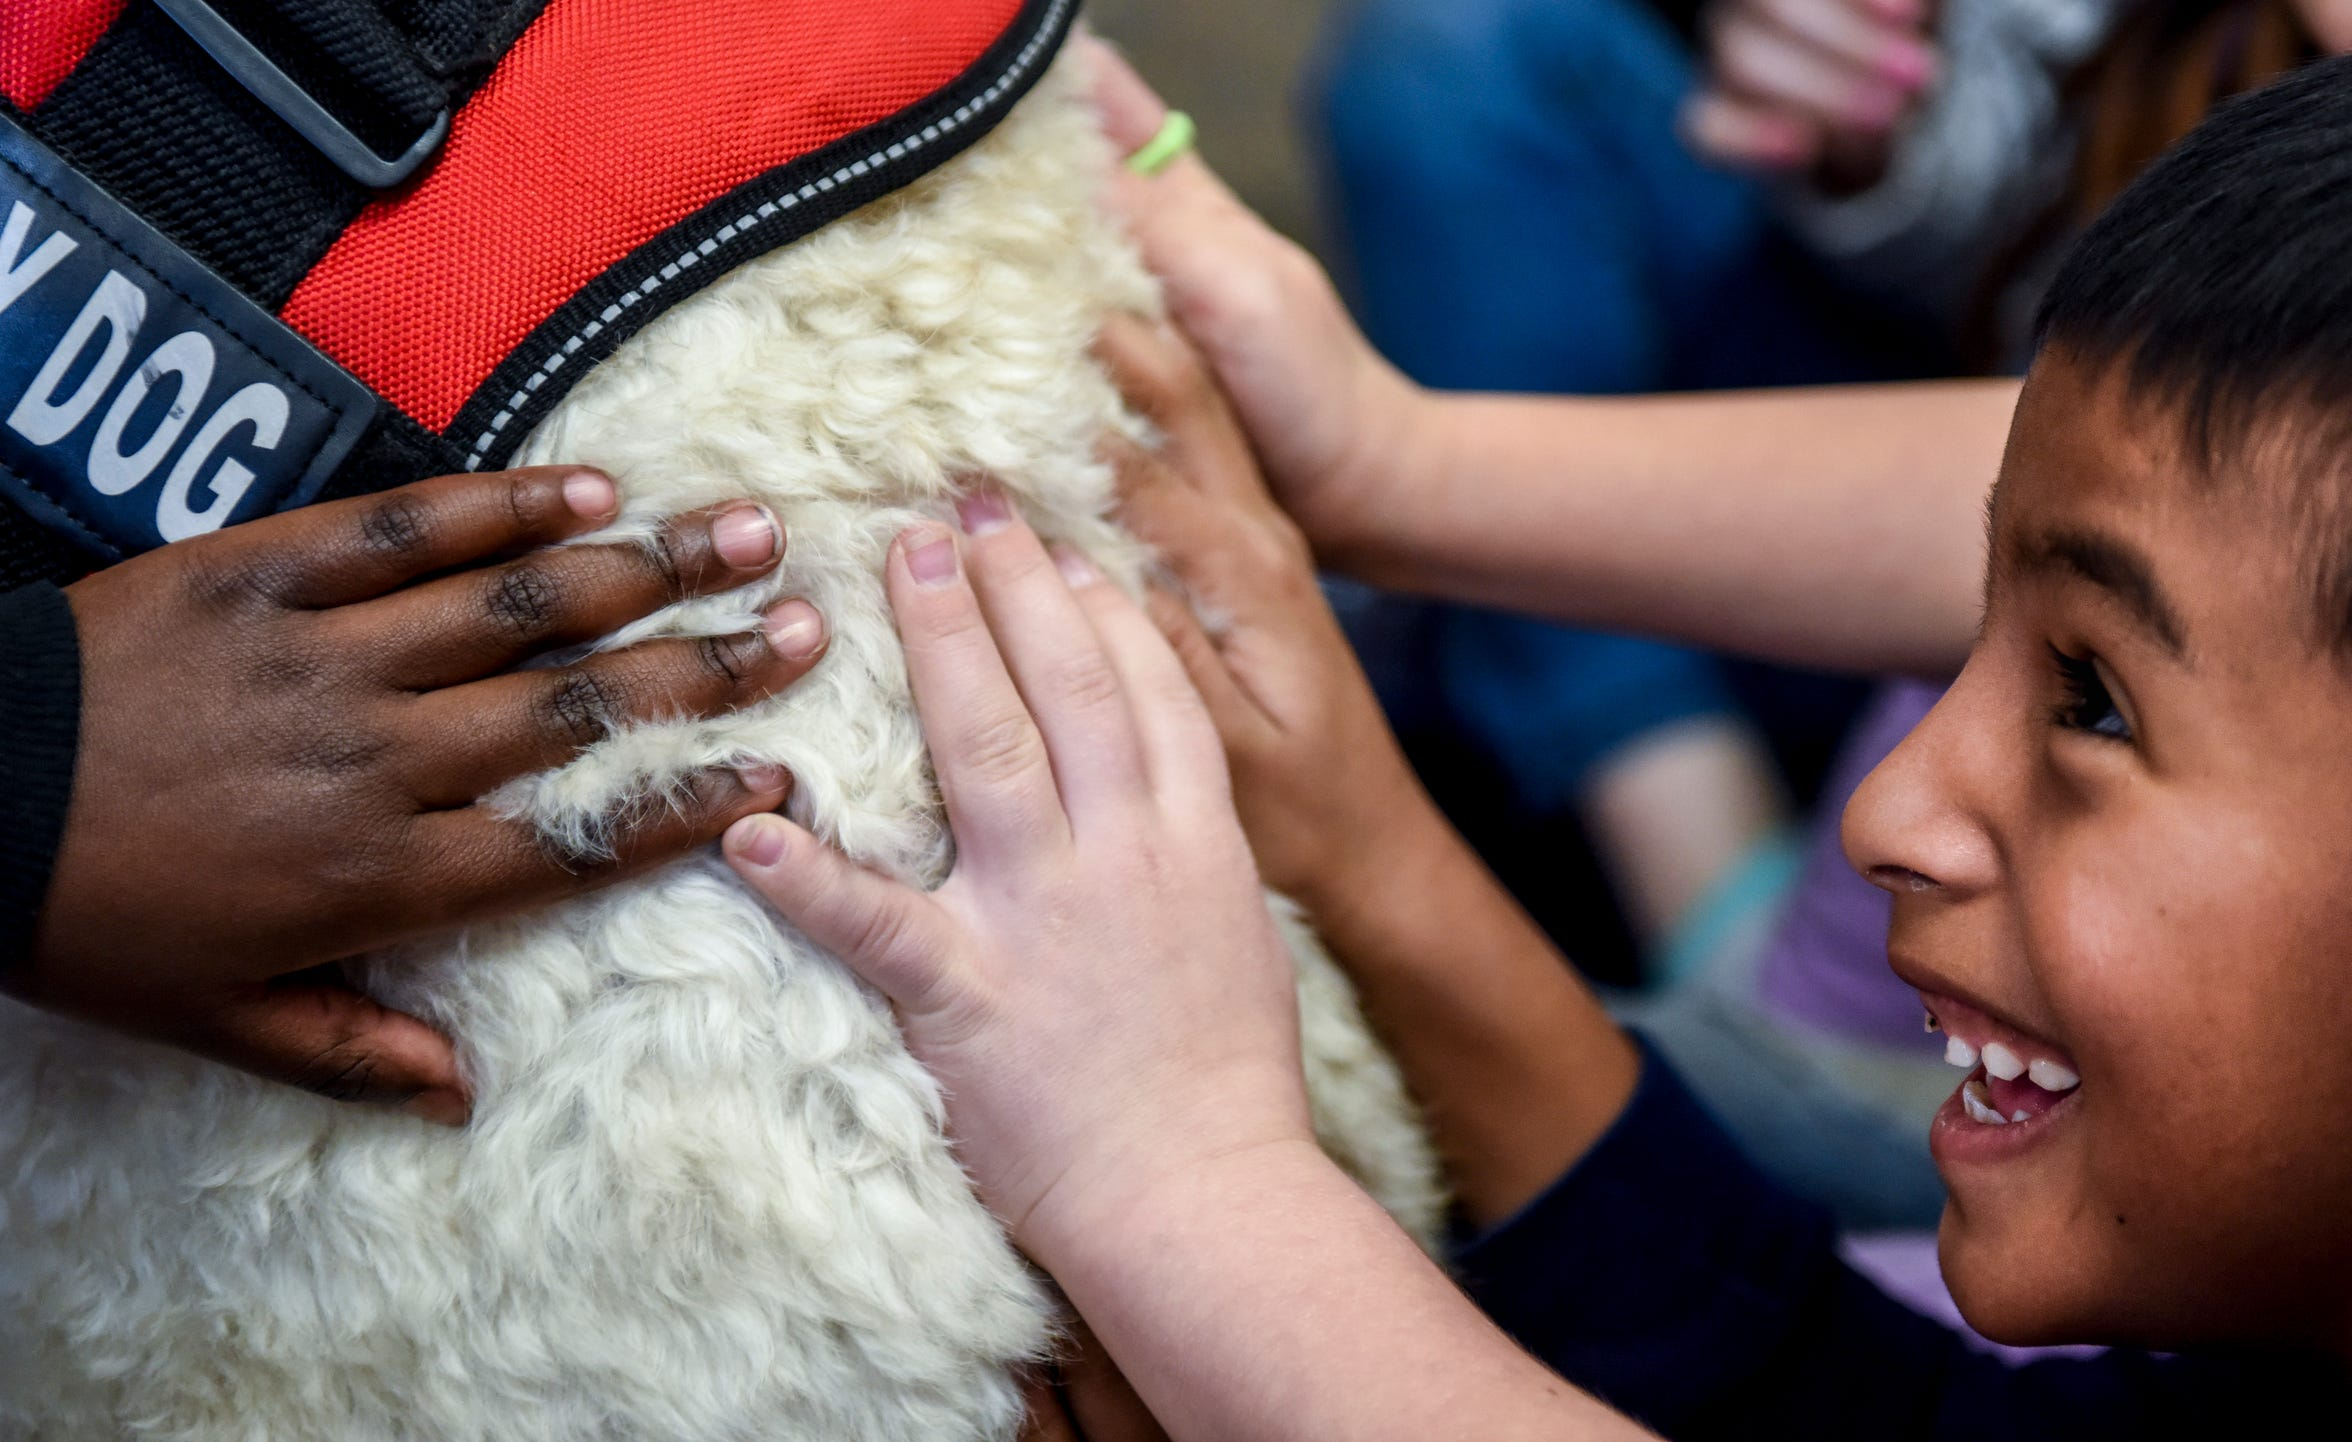 Jostin Cardona, 6, pets Maggie the golden doodle on Friday, Nov. 22, 2019 at Hayward Elementary School. First grade teacher Christina Godshall brought Maggie the golden doodle as a therapy dog for students and staff.